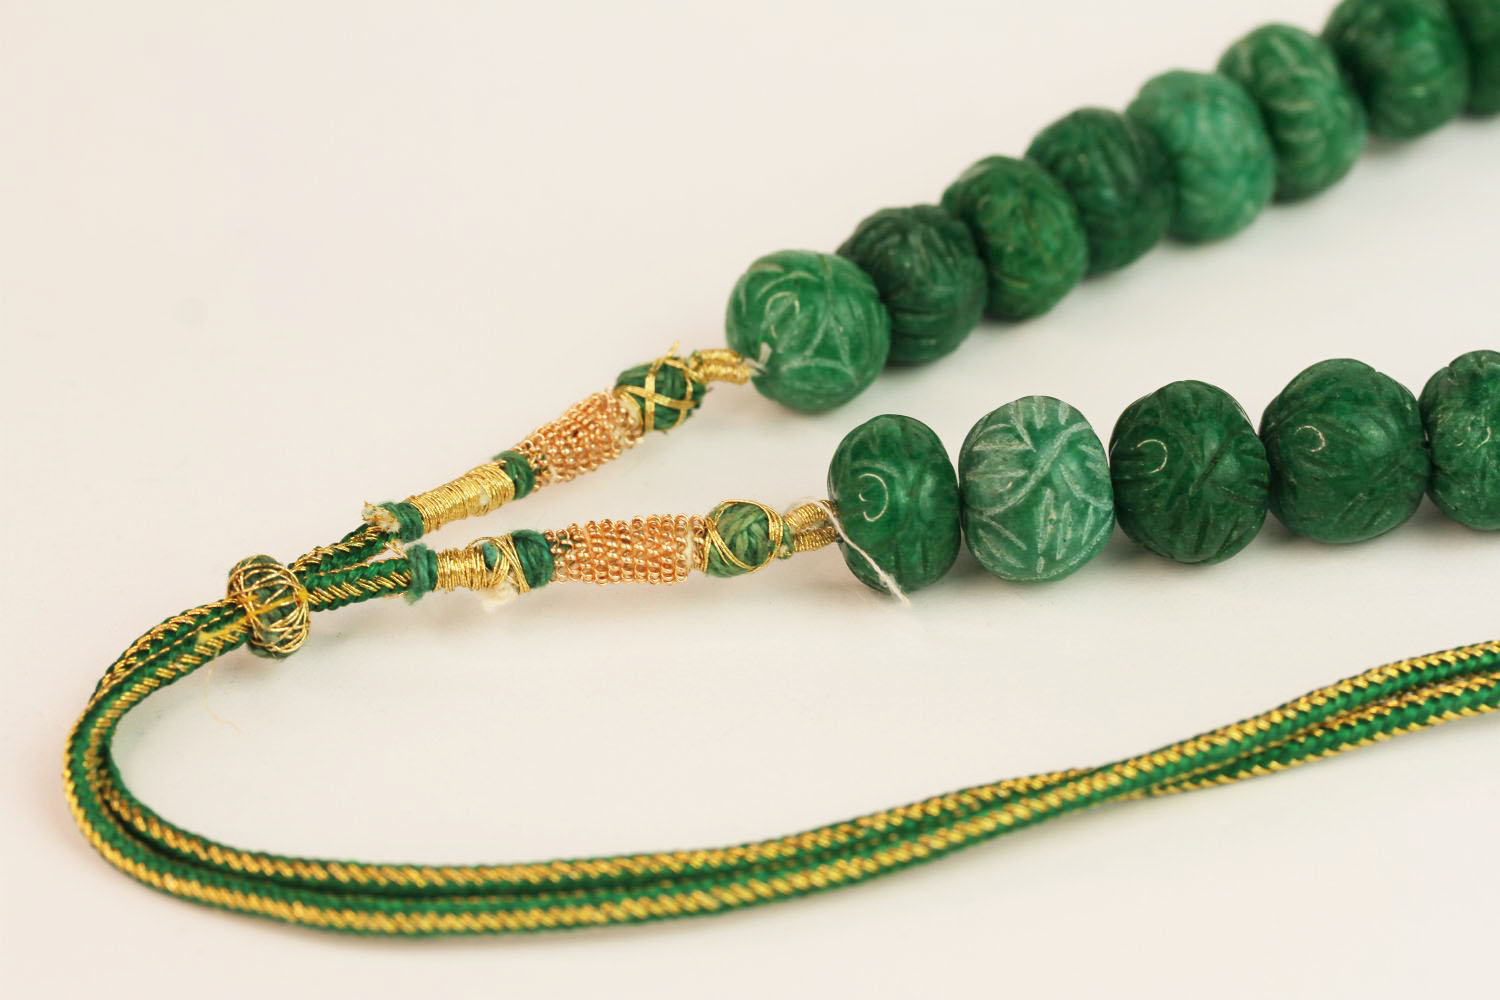 Weighty earth-mined carved natural emerald bead necklace with woven, adjustable slip knot and - Image 2 of 4